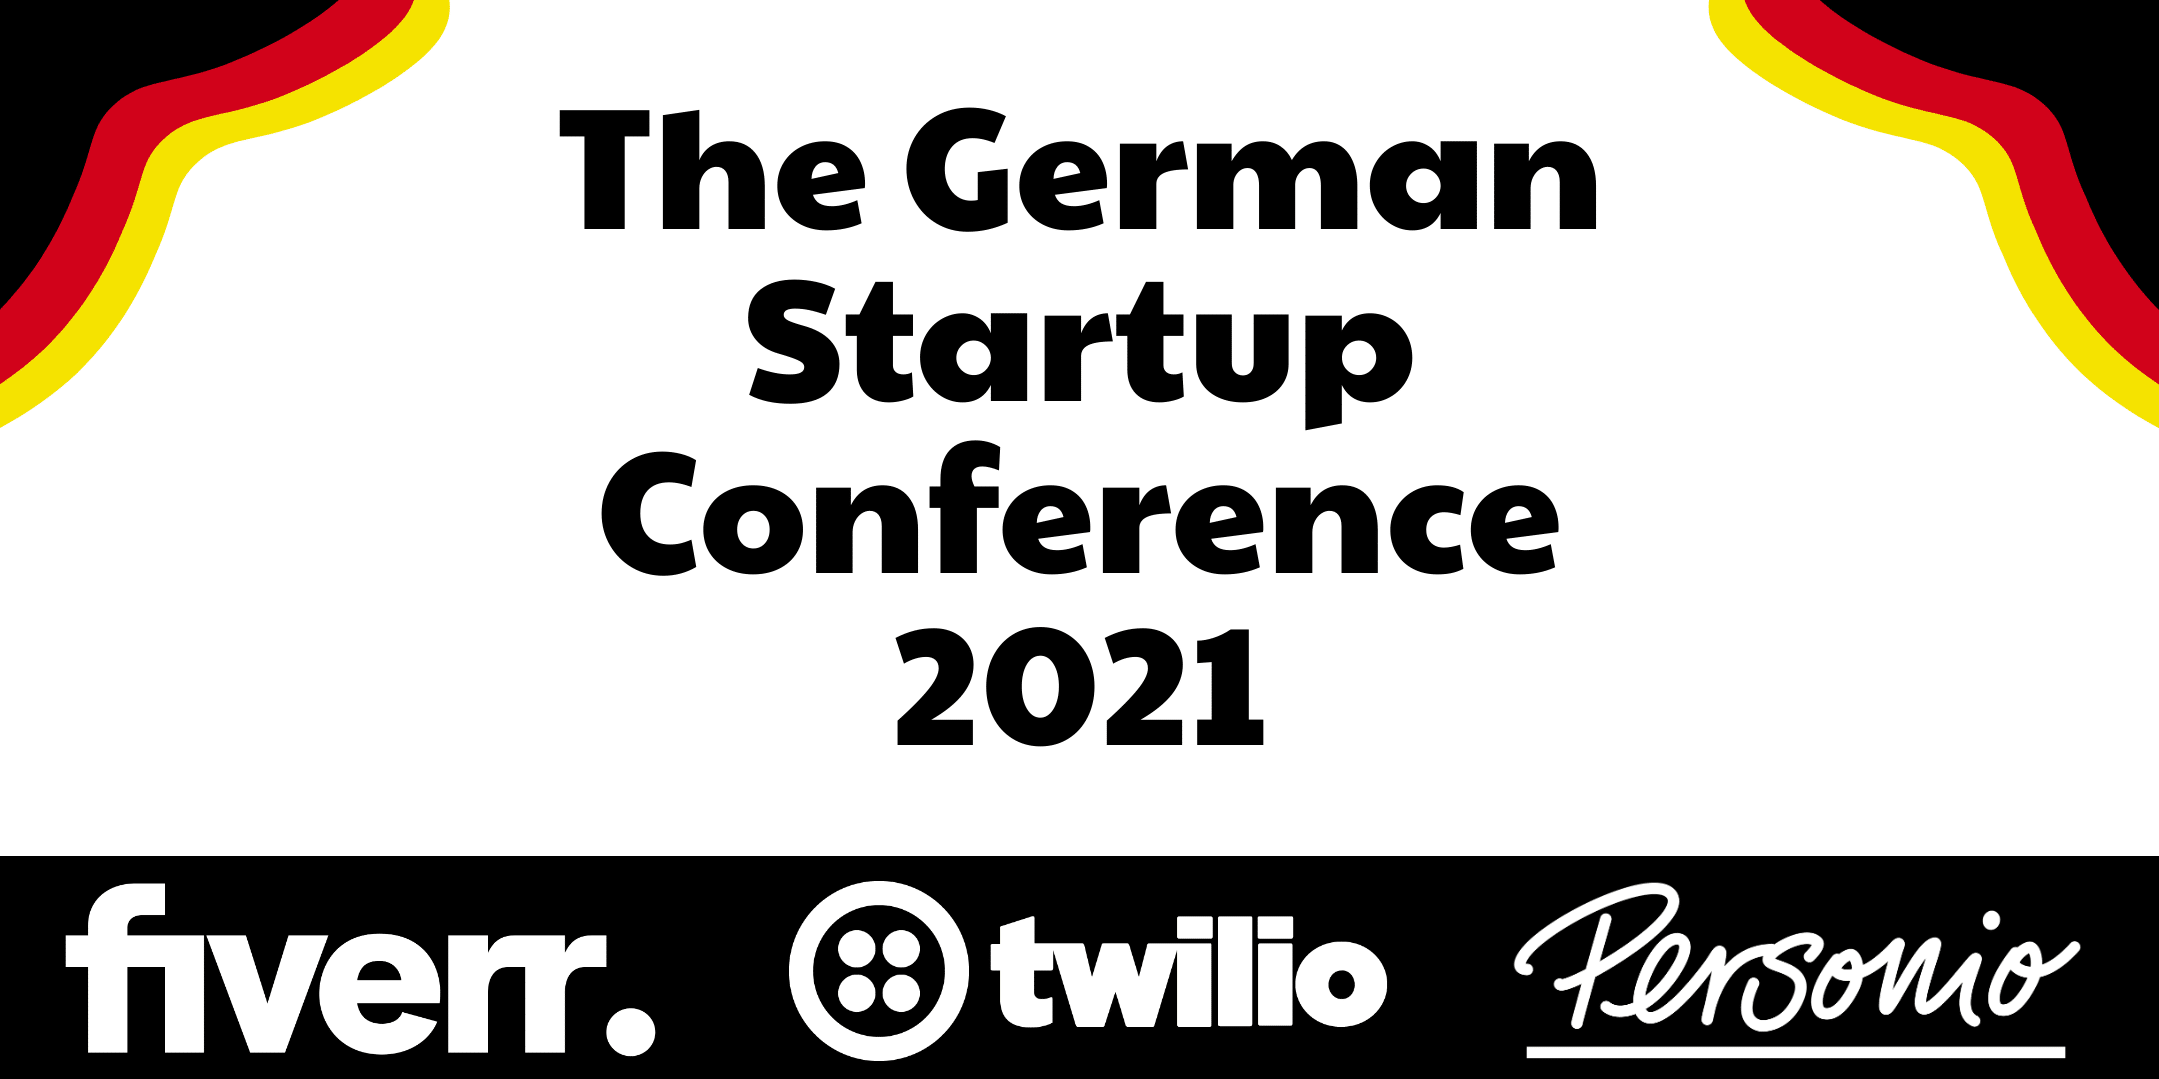 The German Startup Conference 2021